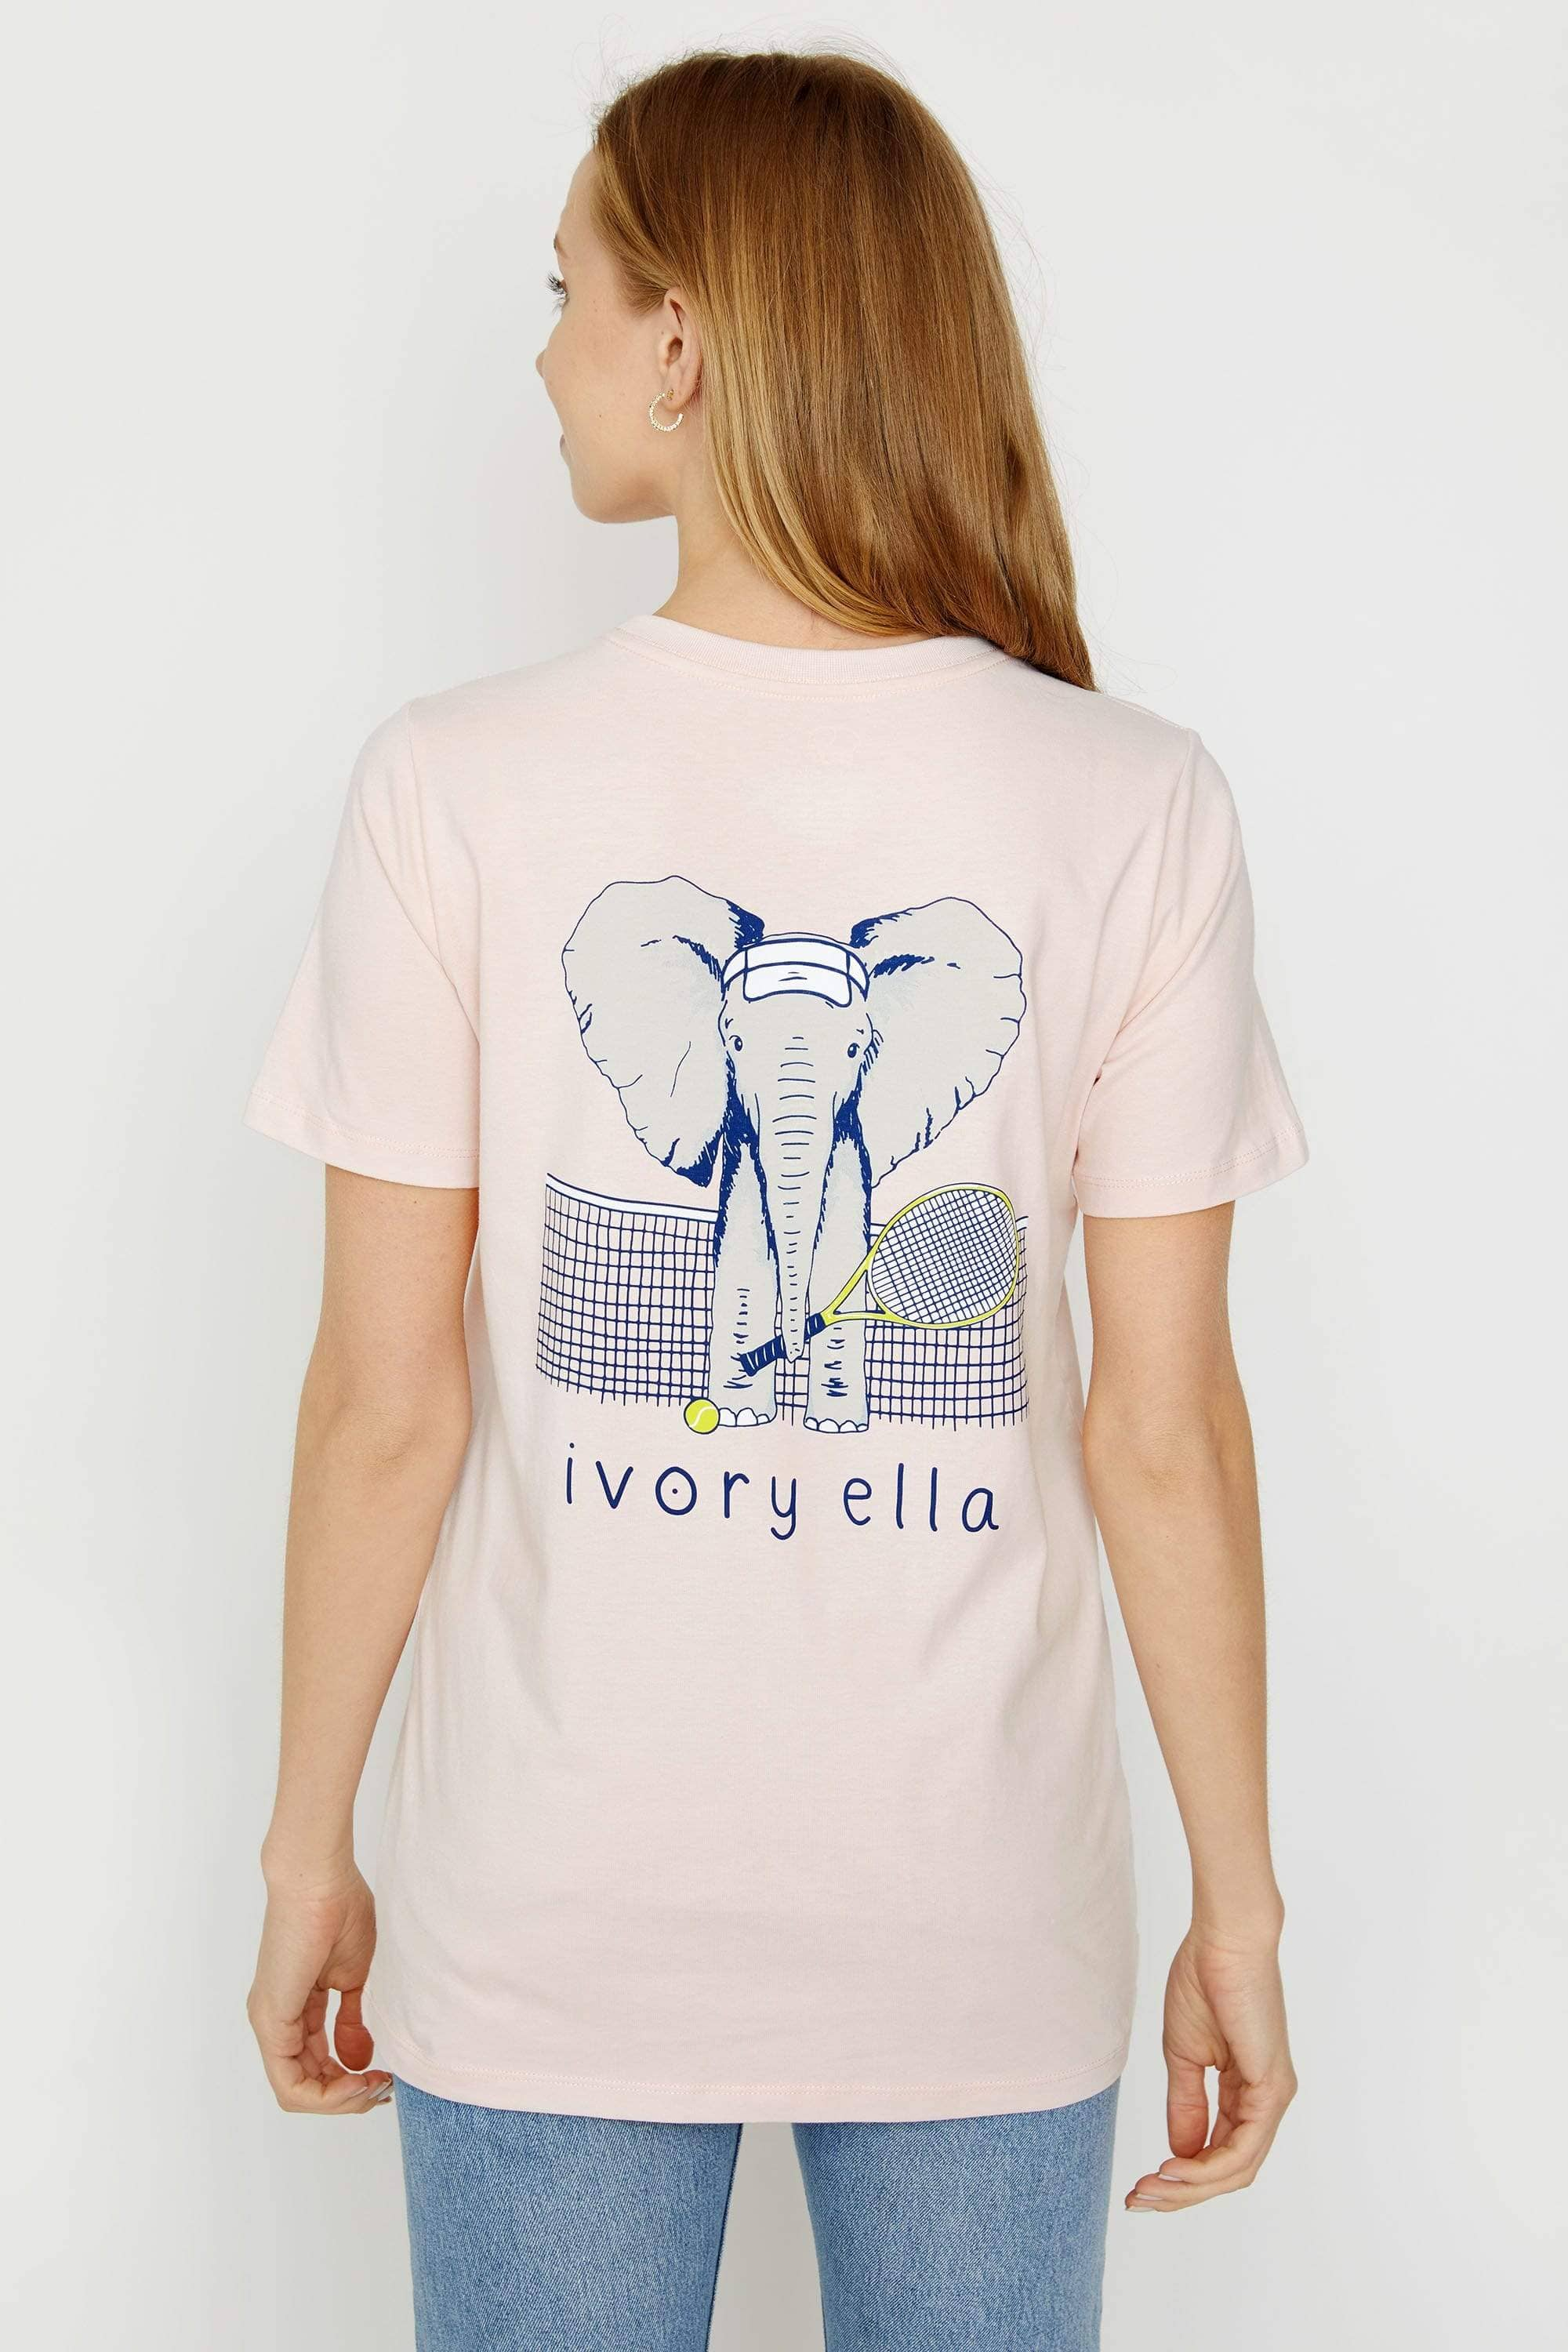 Ivory Ella Women's Short Sleeve Tees XXS Ella Fit Crystal Pink Tennis Tee